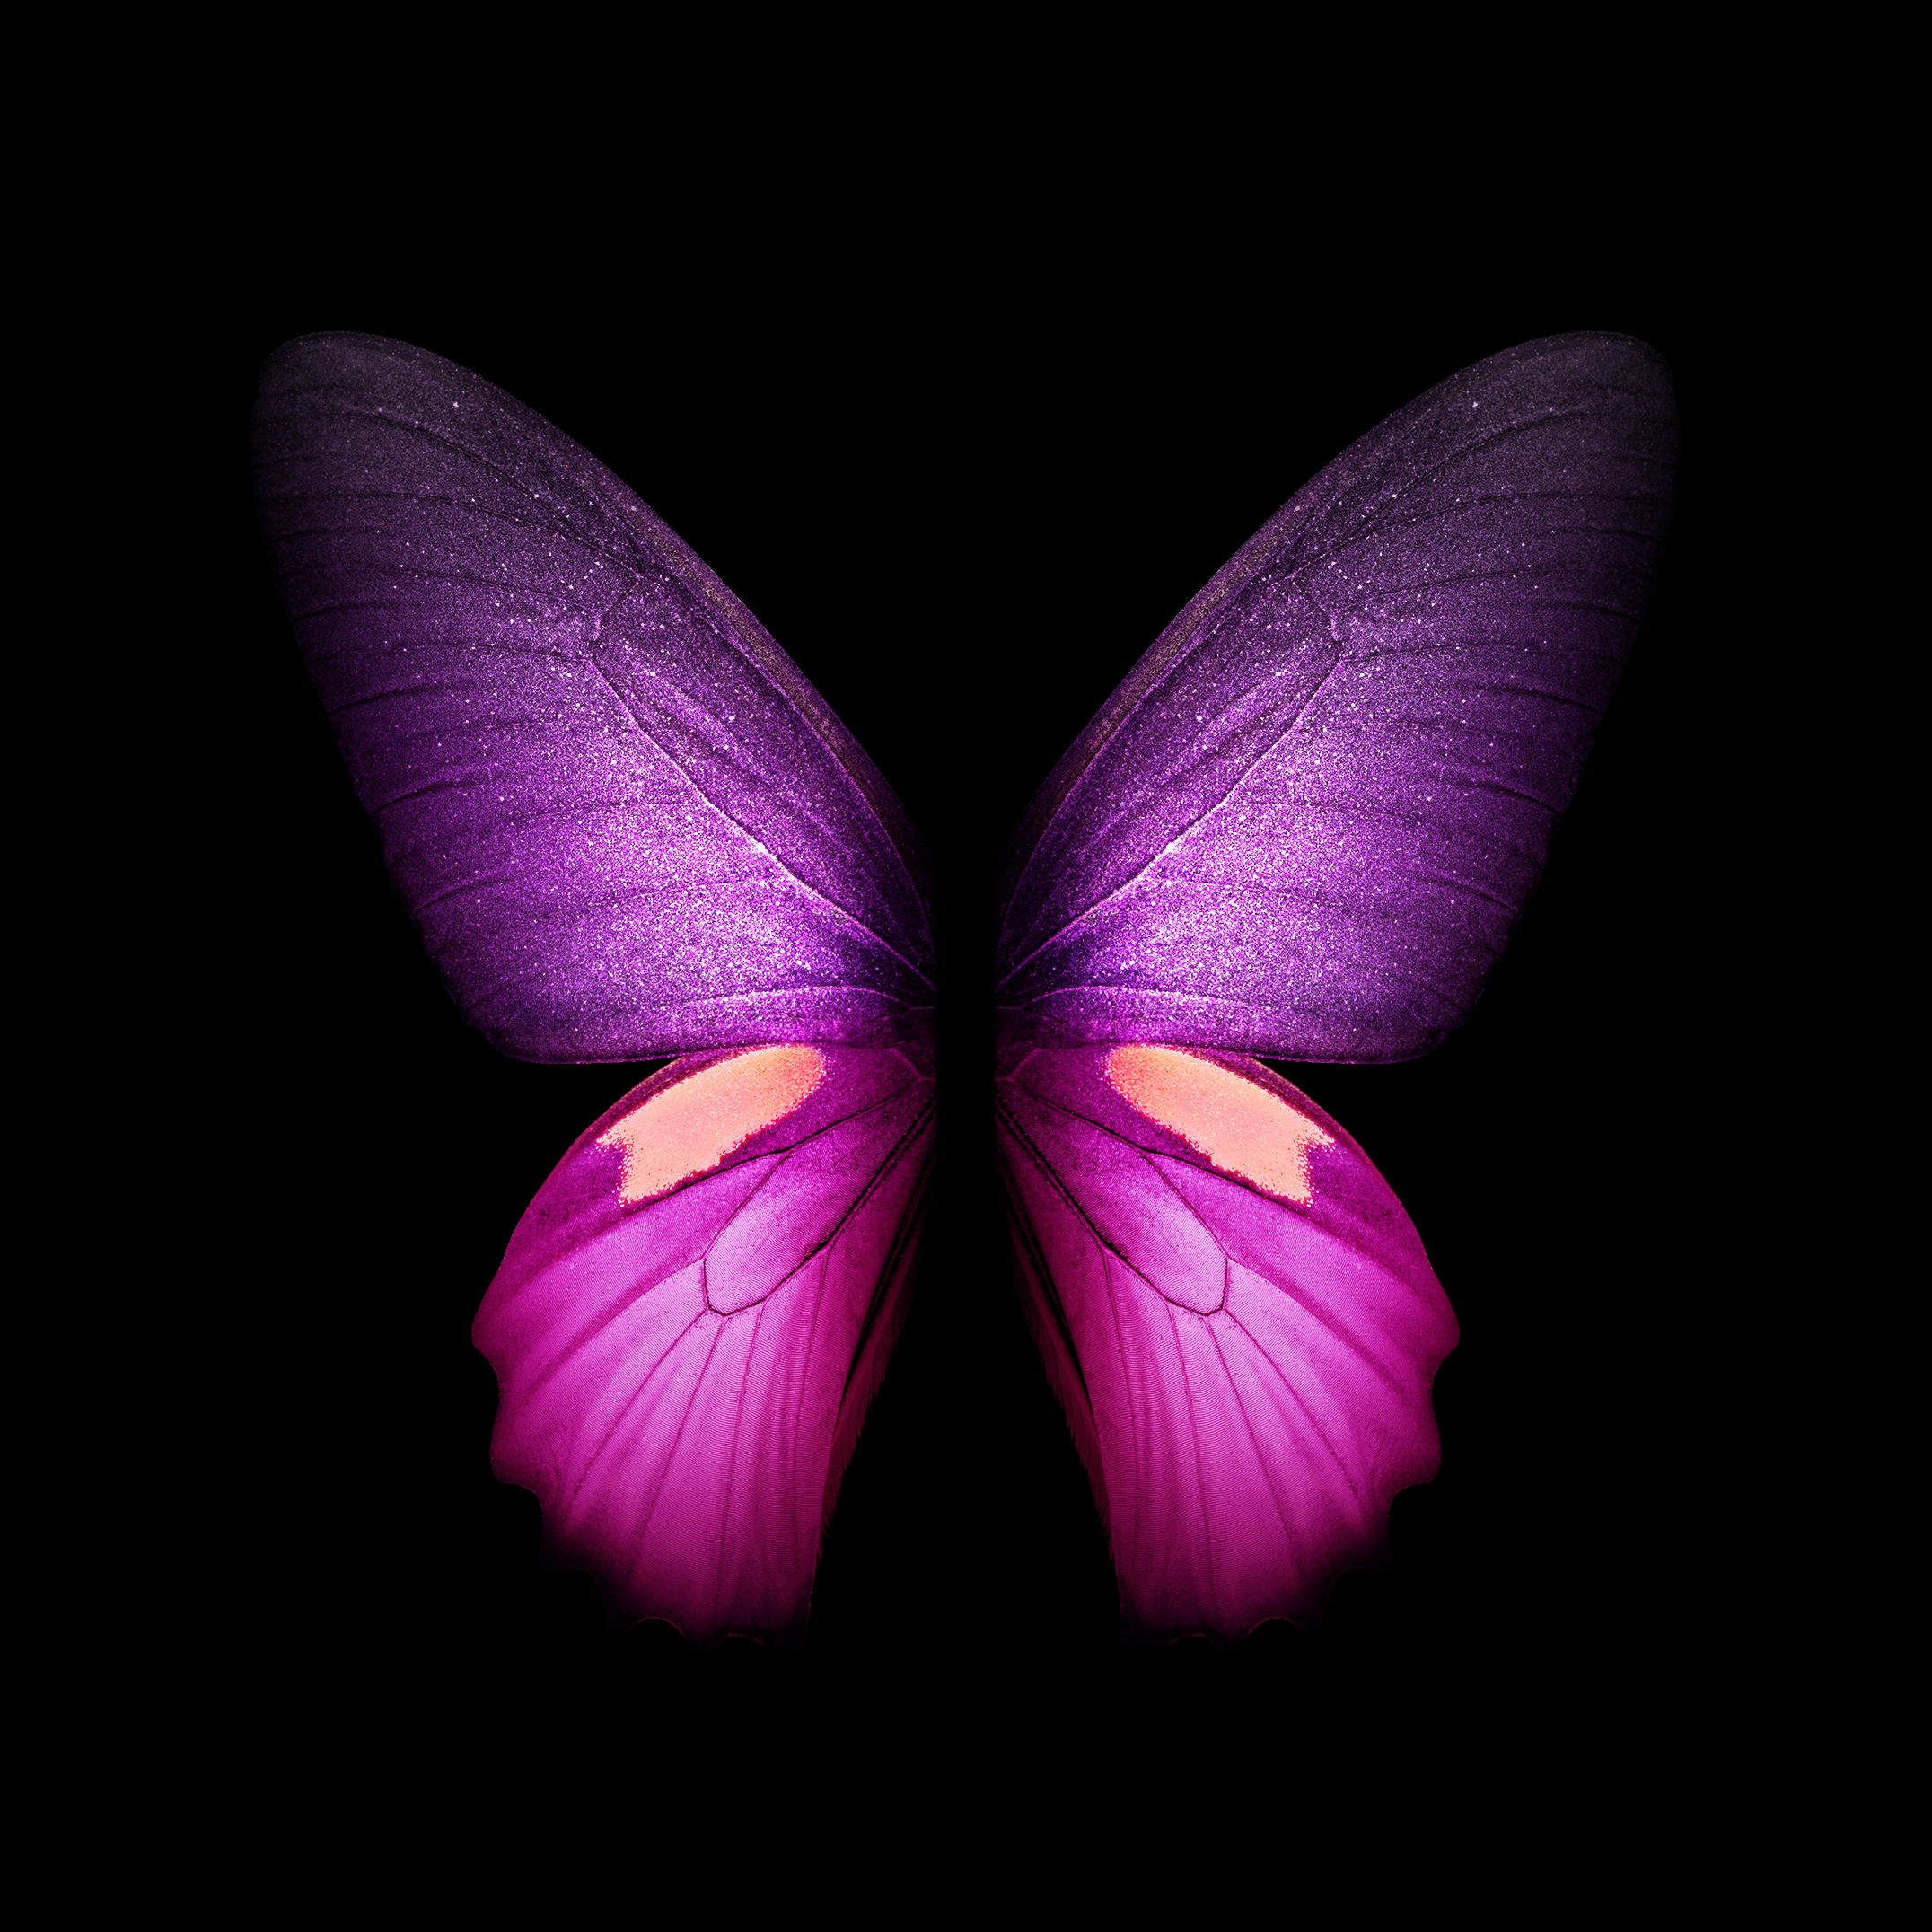 Butterfly Images Hd Wallpaper Download Mp3